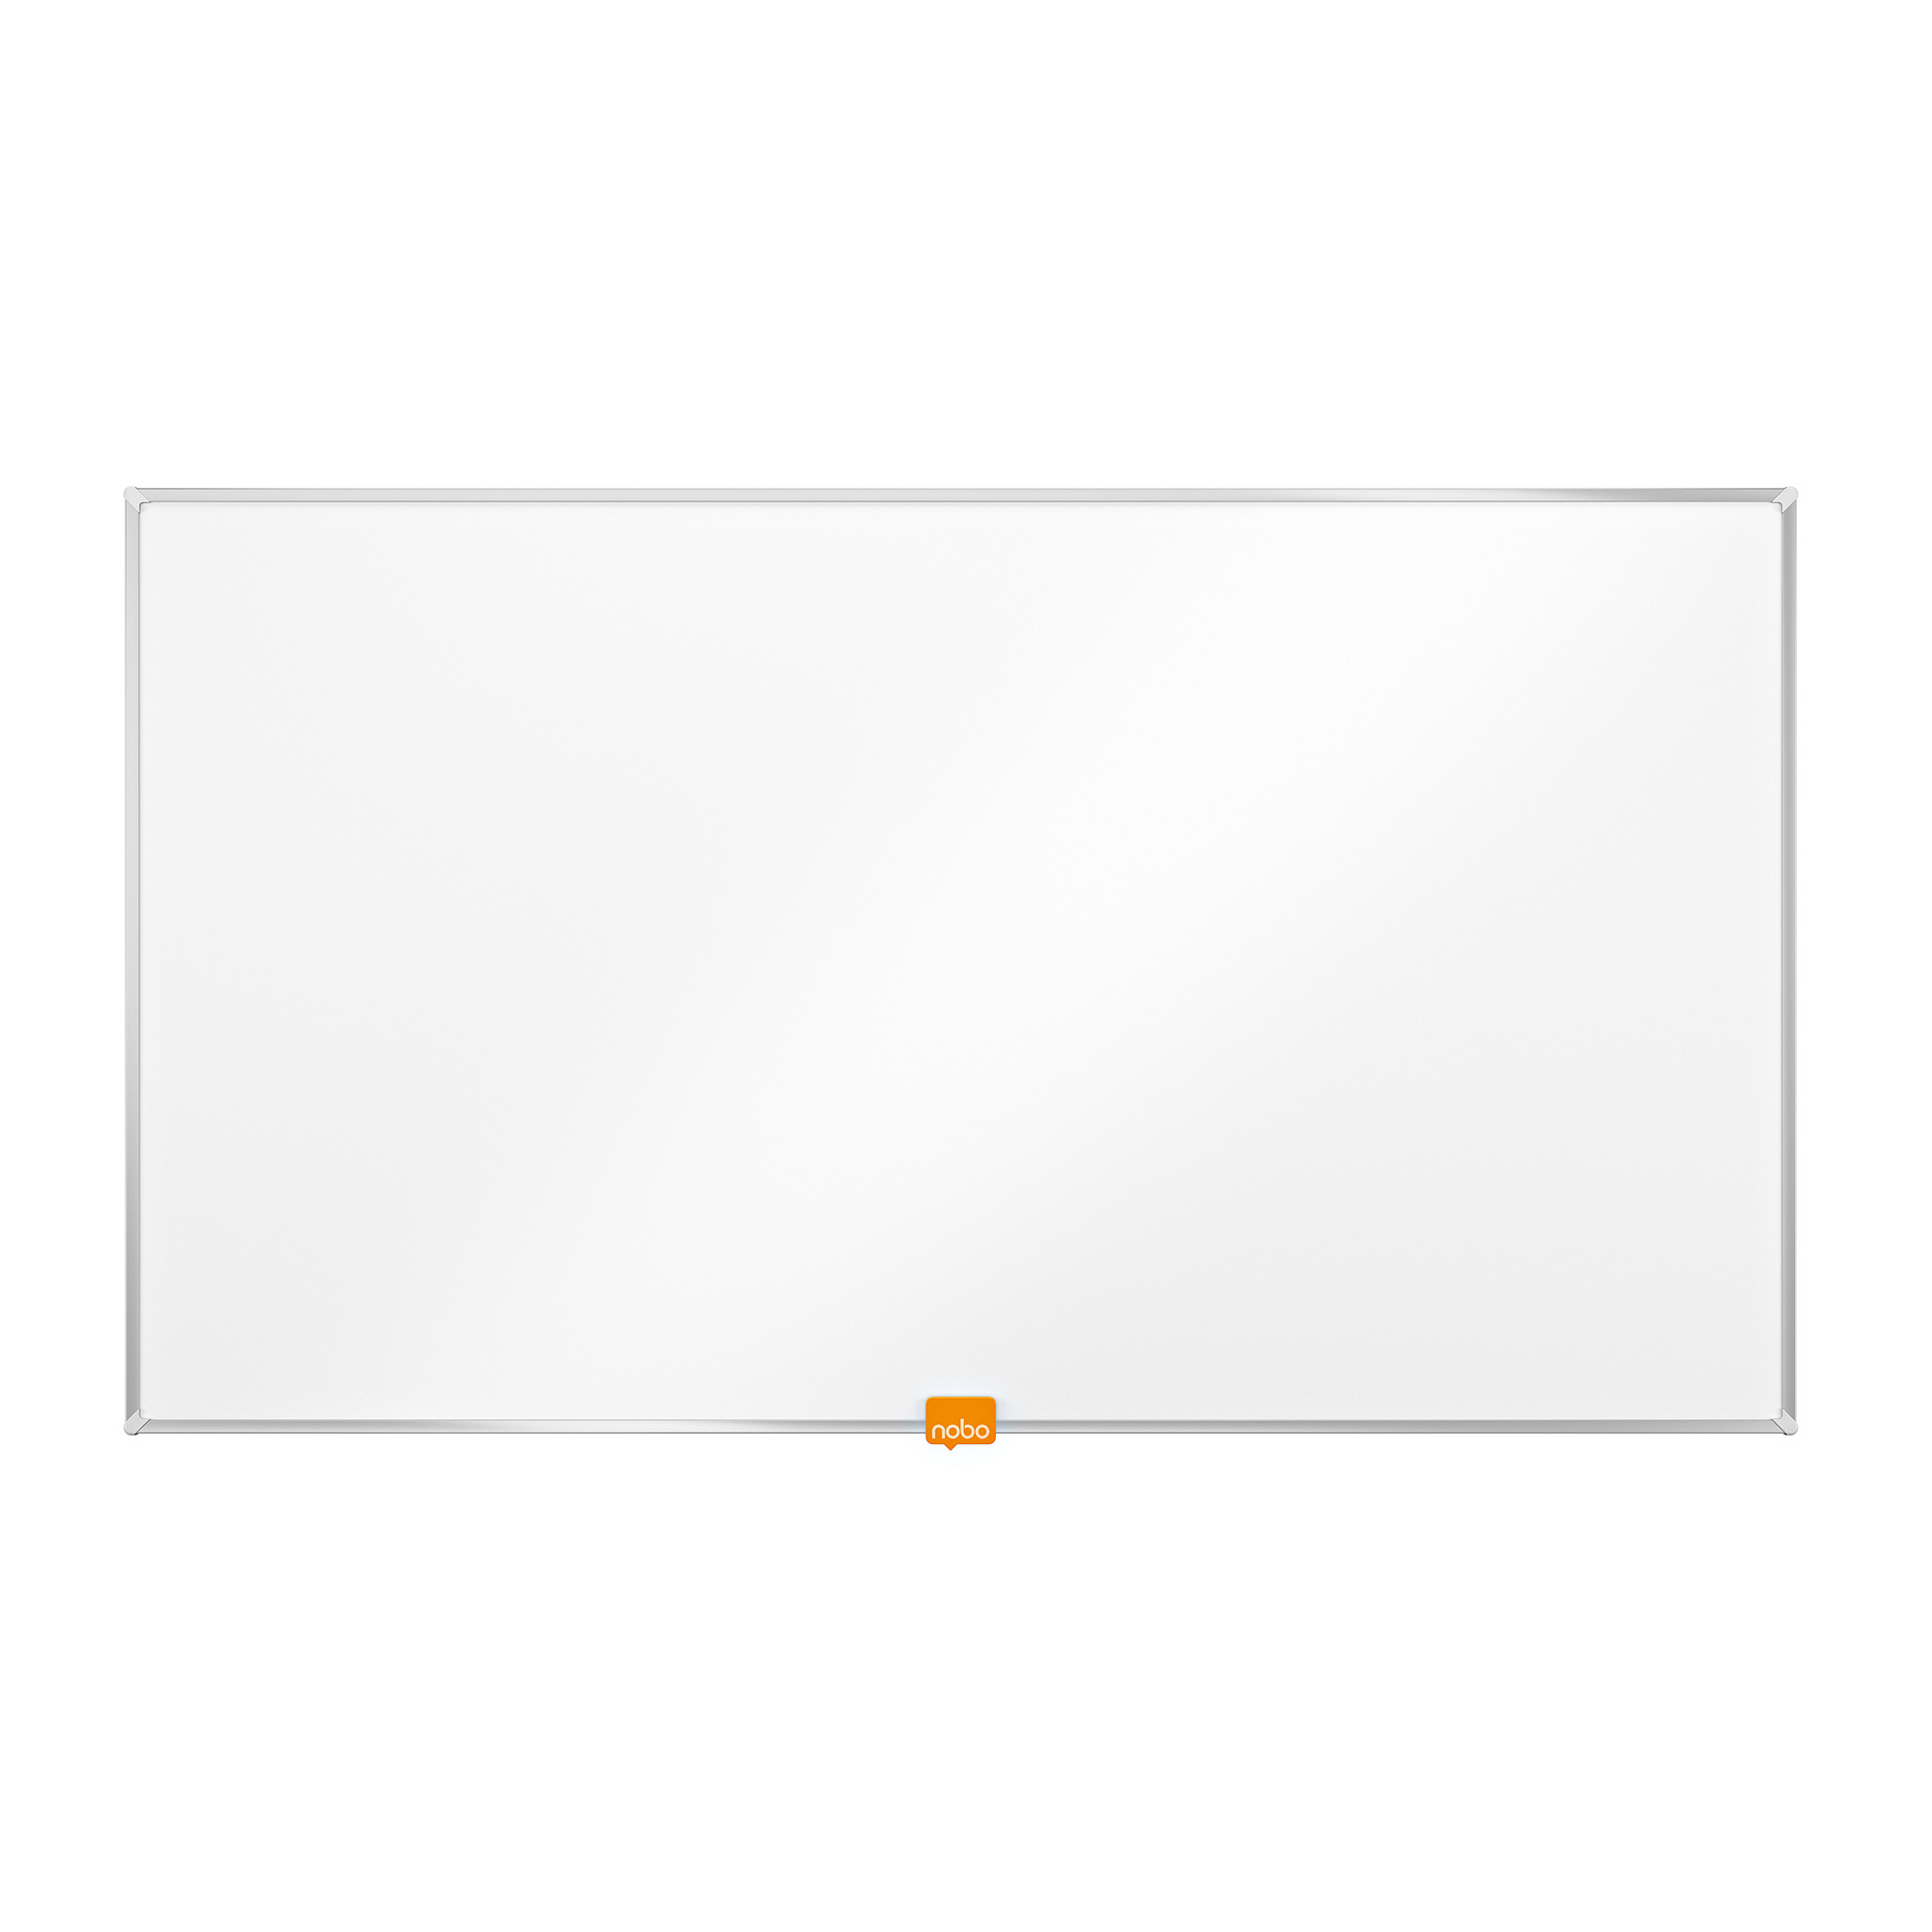 Nobo Widescreen 32 inch Whiteboard Melamine Surface Magnetic W721xH411 White Ref 1905291